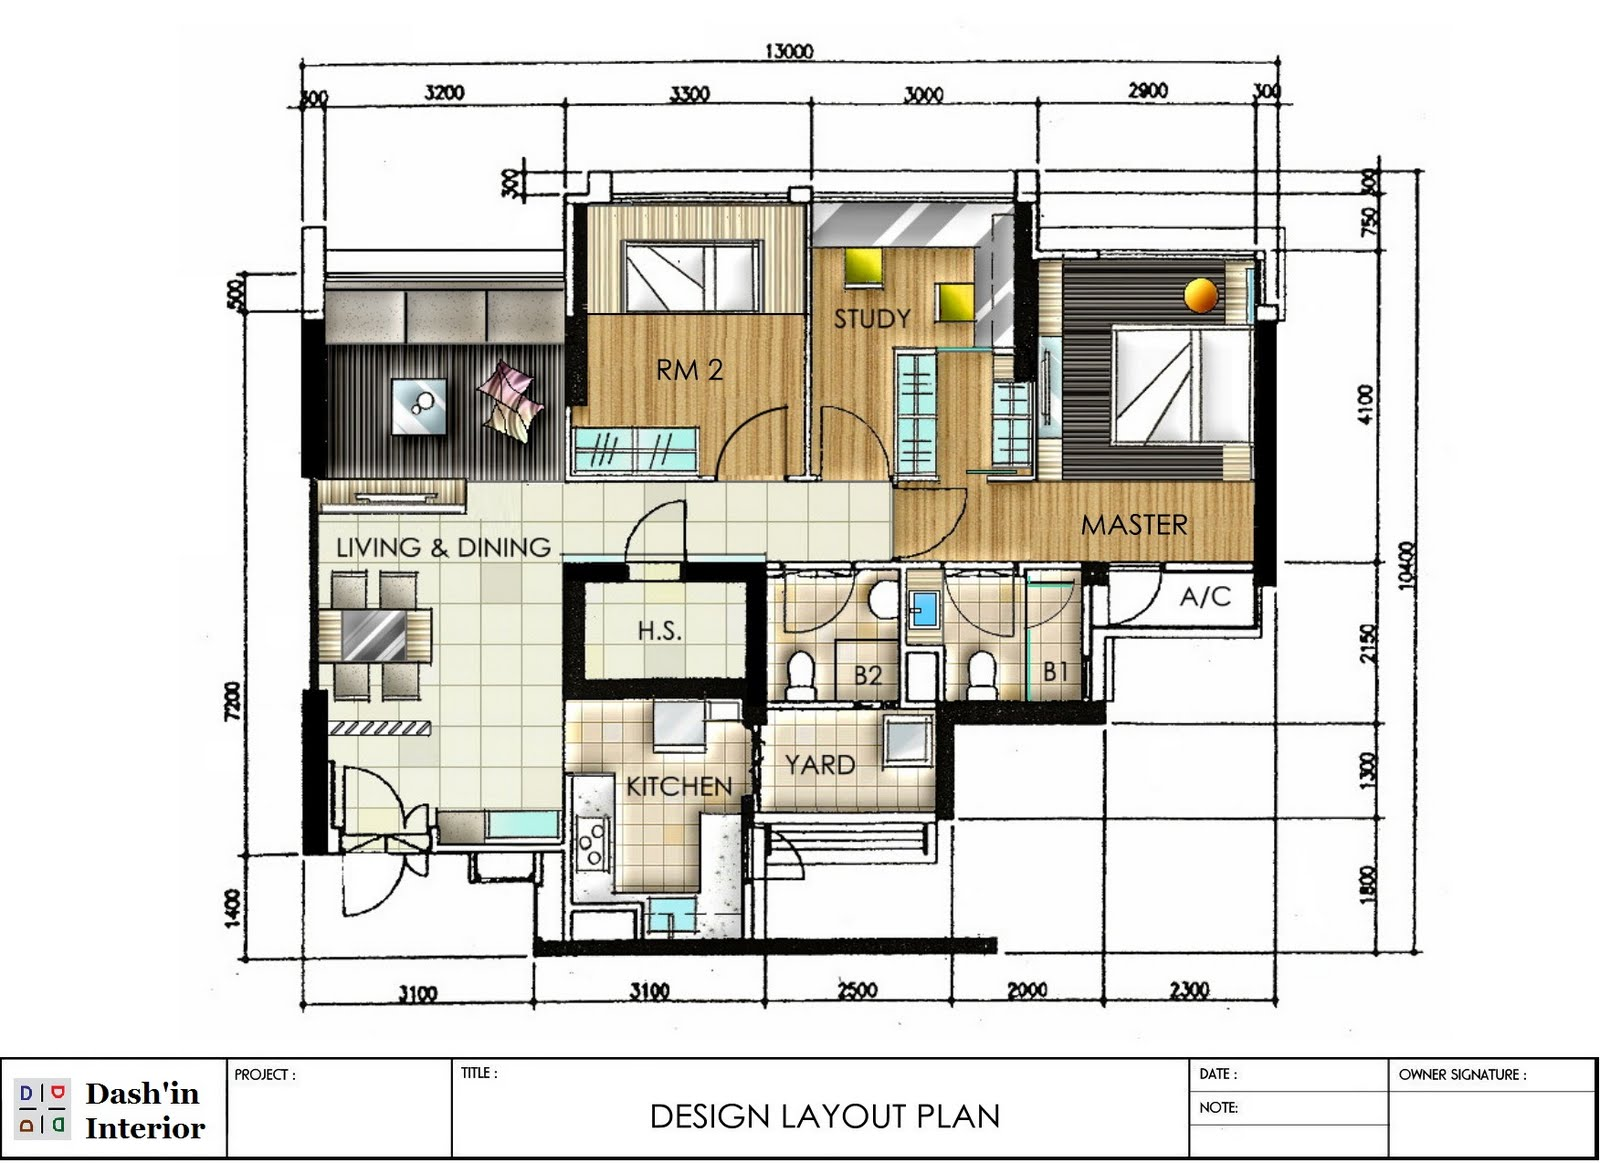 Dash 39 in interior hand drawn designs floor plan layout for Planner design